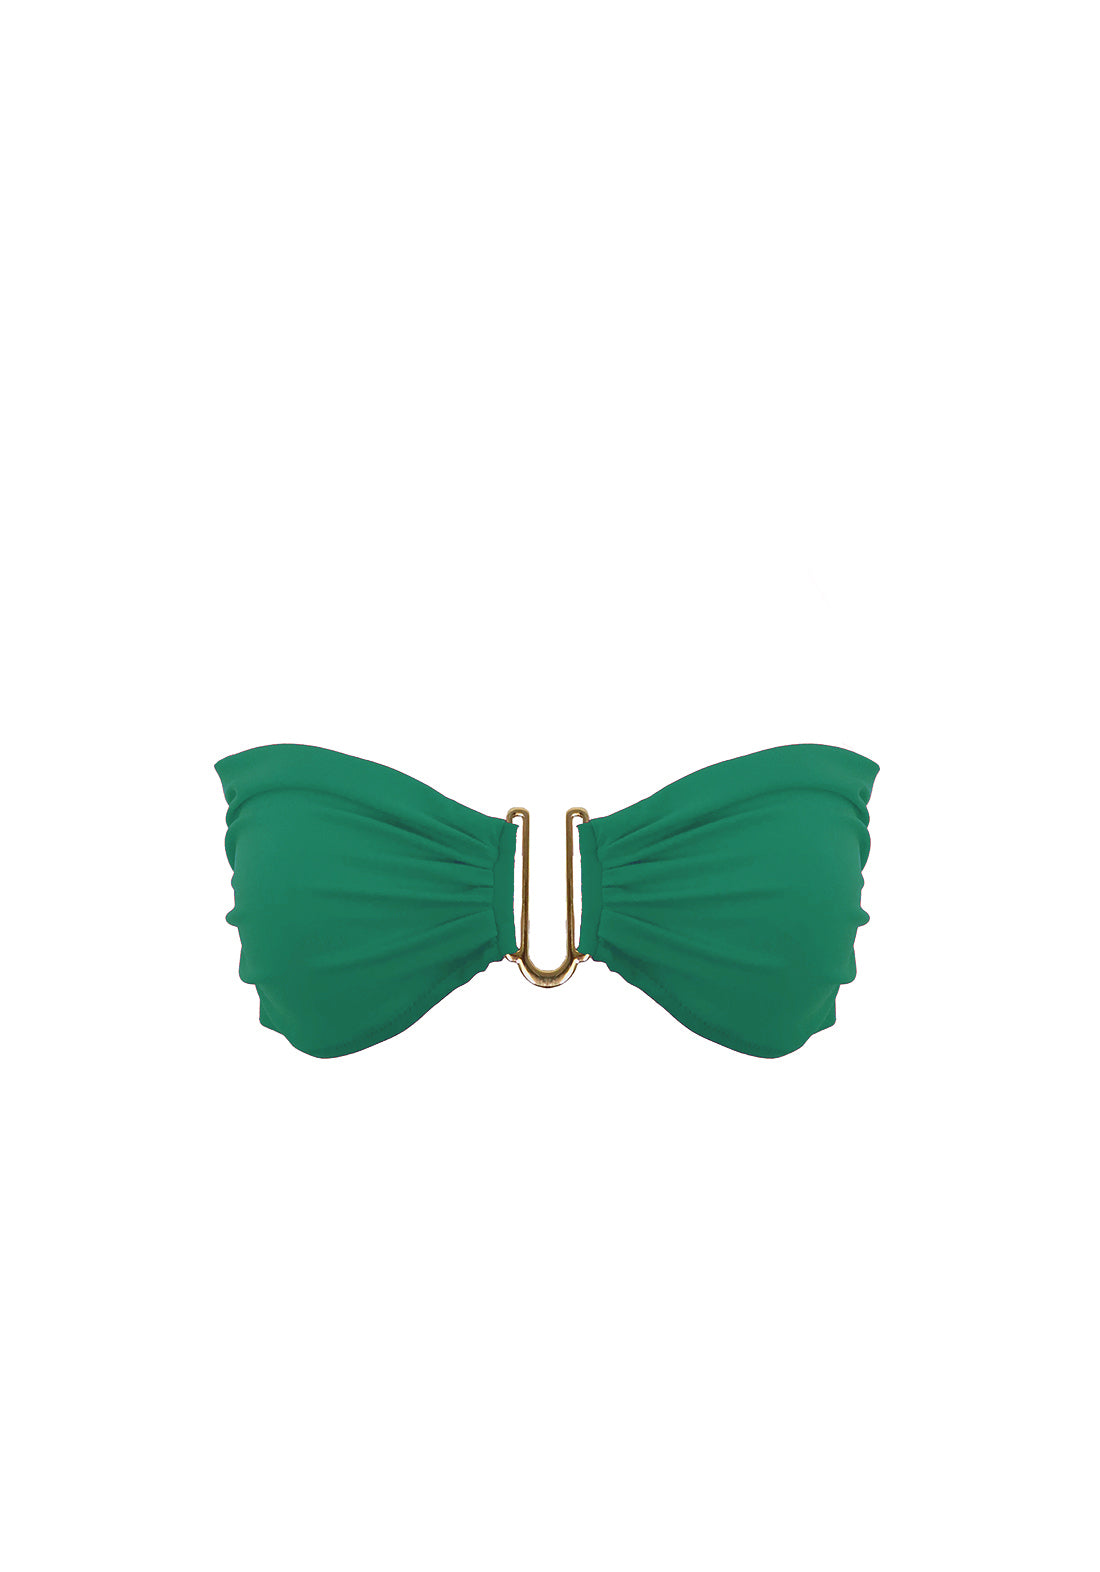 Rêve d'Été Bandeau Bikini Top in Green - I.D. Sarrieri